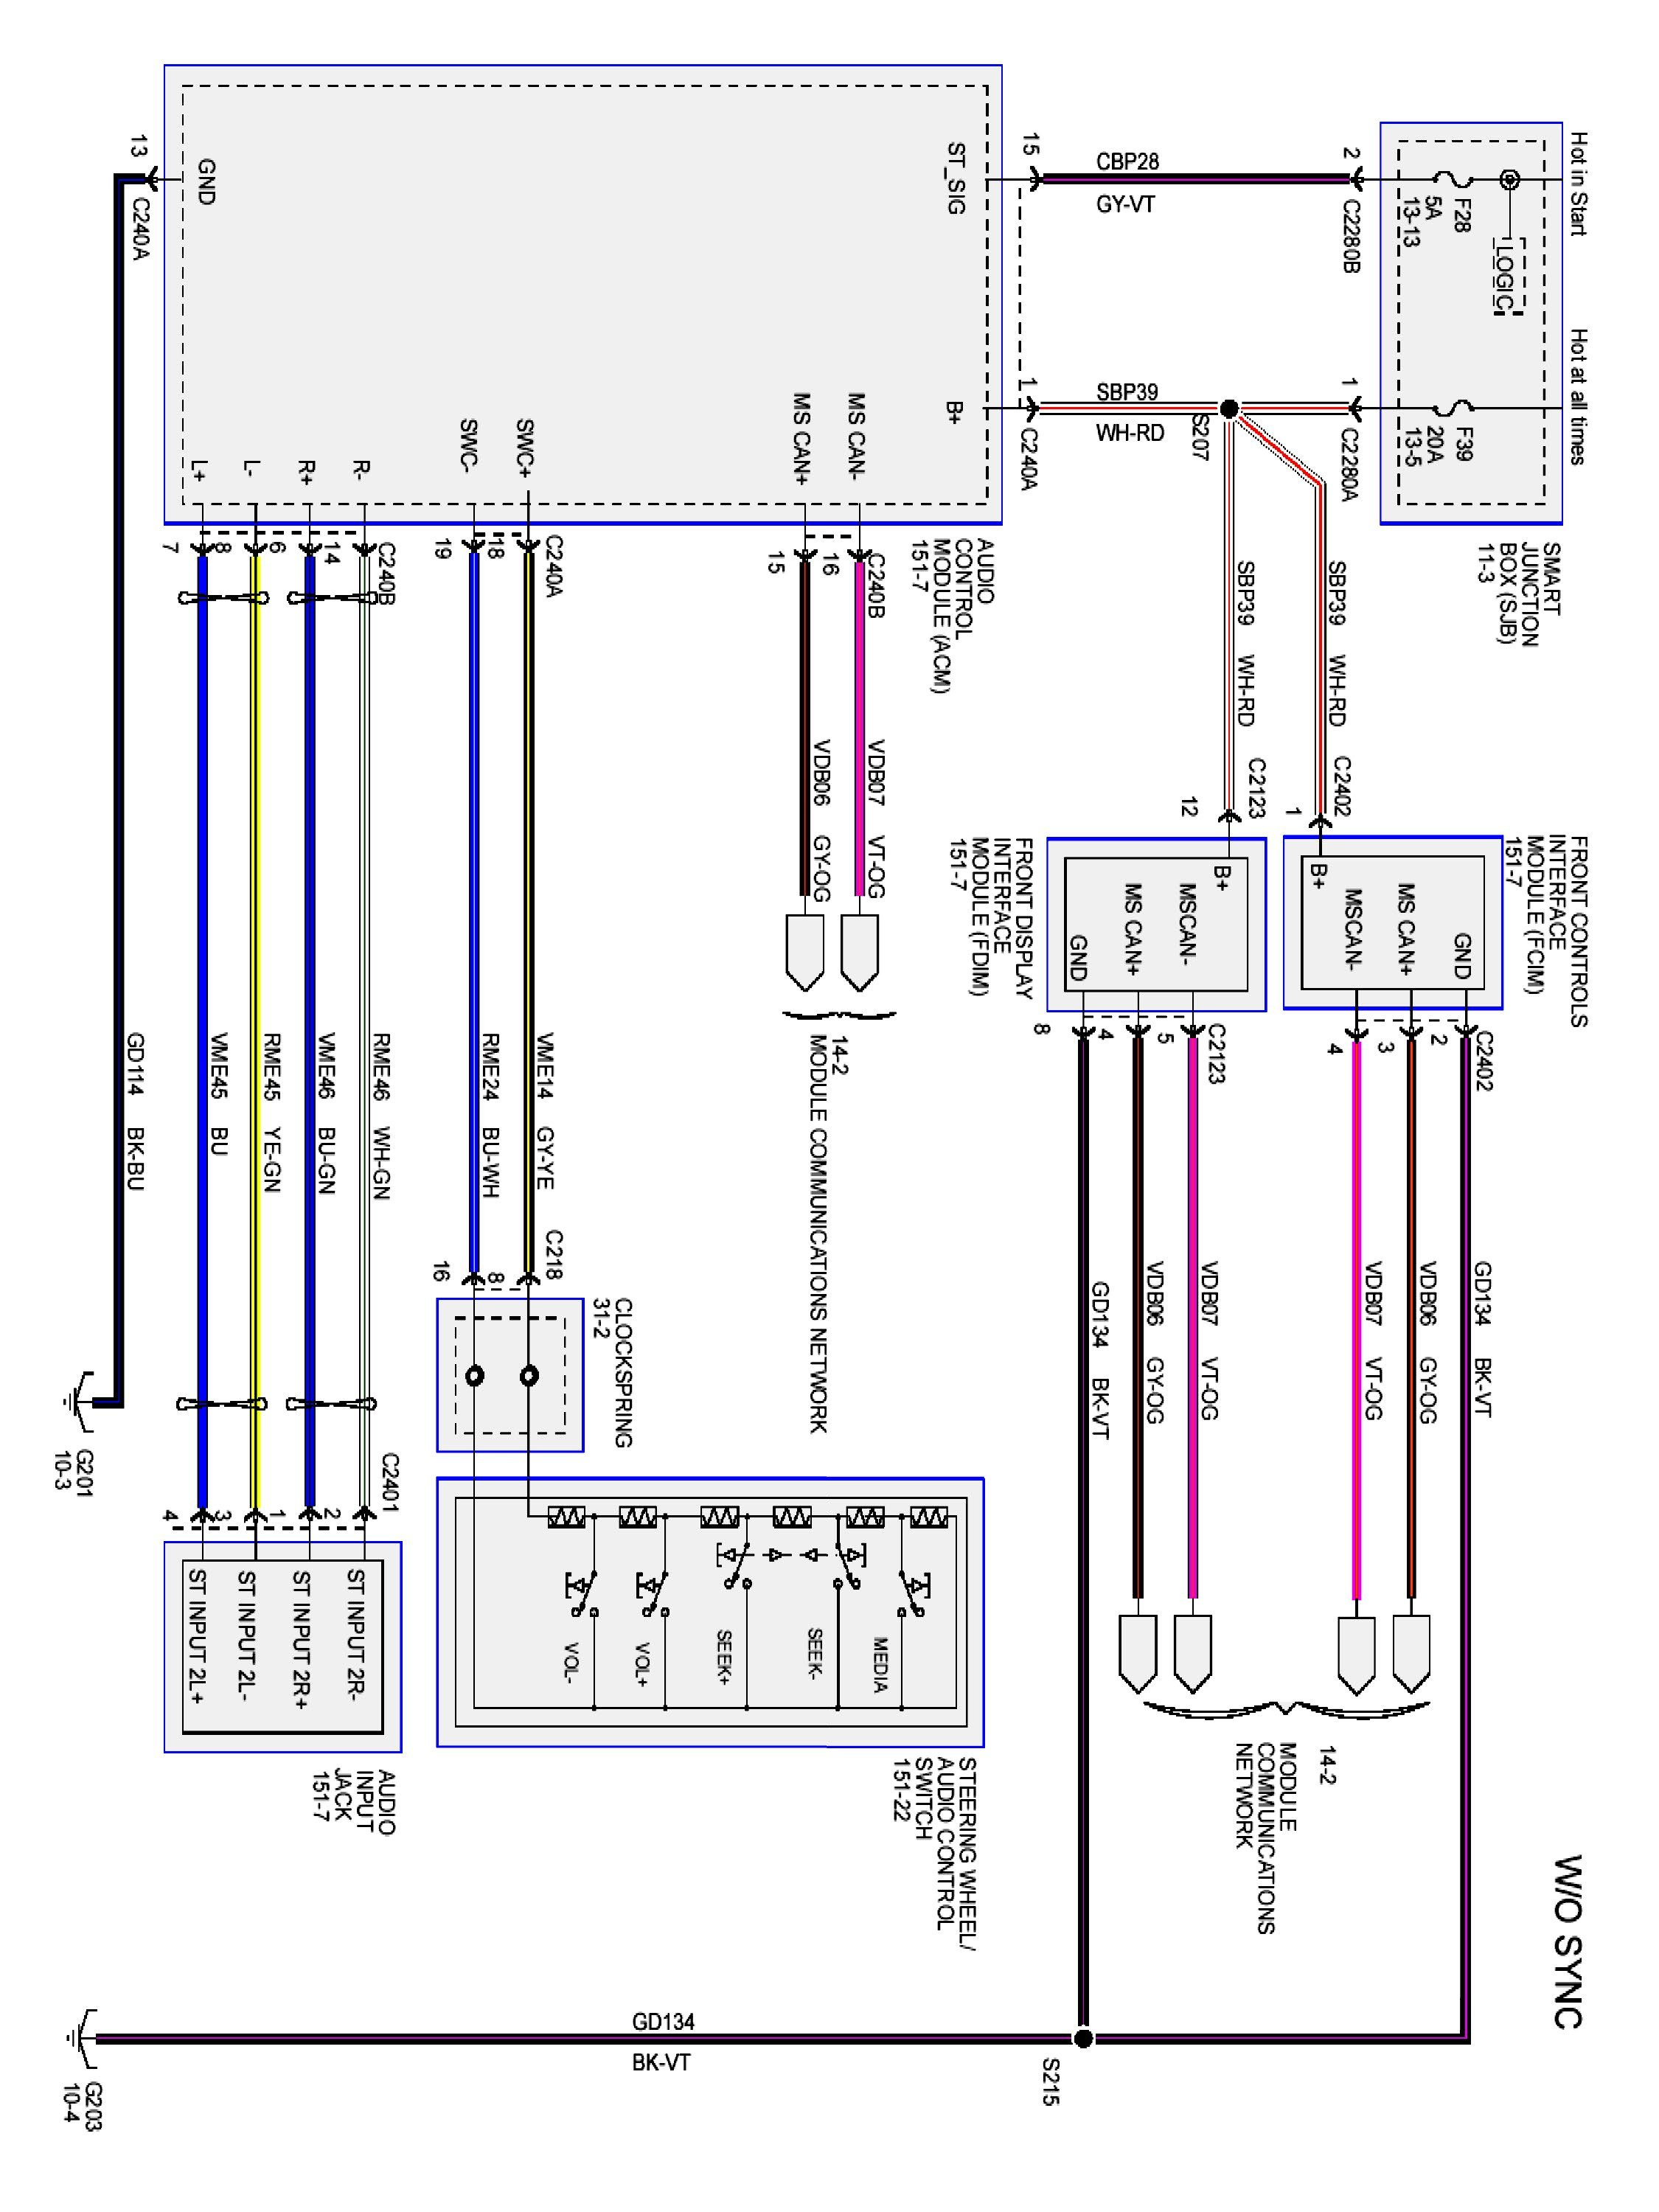 2012 ford focus wiring diagram xs 9243  2003 ford excursion engine diagram 2012 ford focus horn wiring diagram xs 9243  2003 ford excursion engine diagram